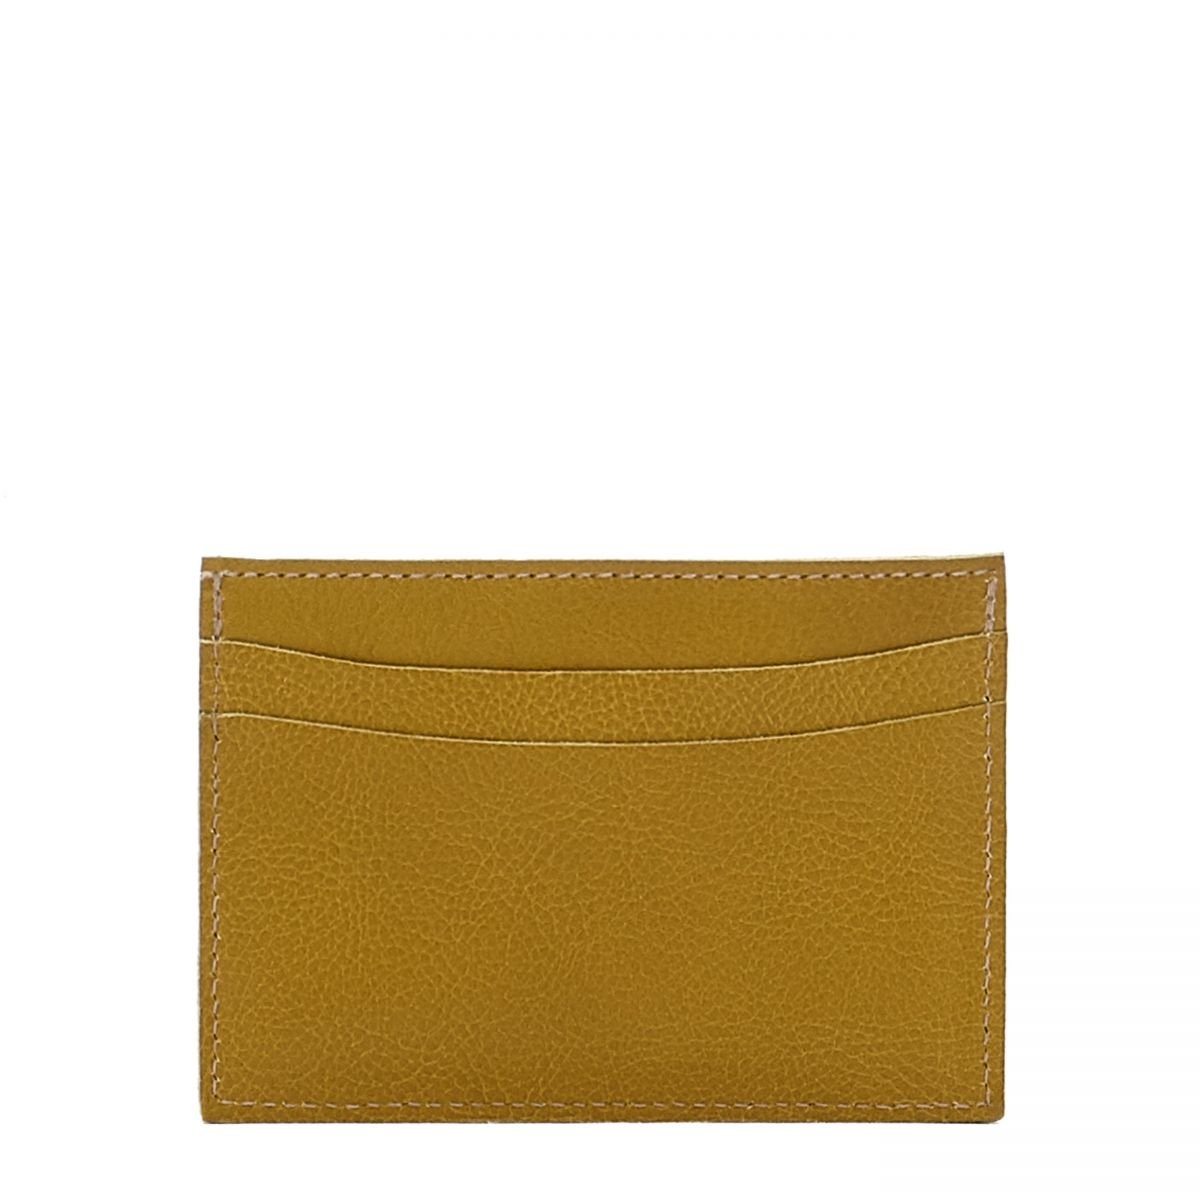 Card Case in Cowhide Leather SCC019 color Curry | Details